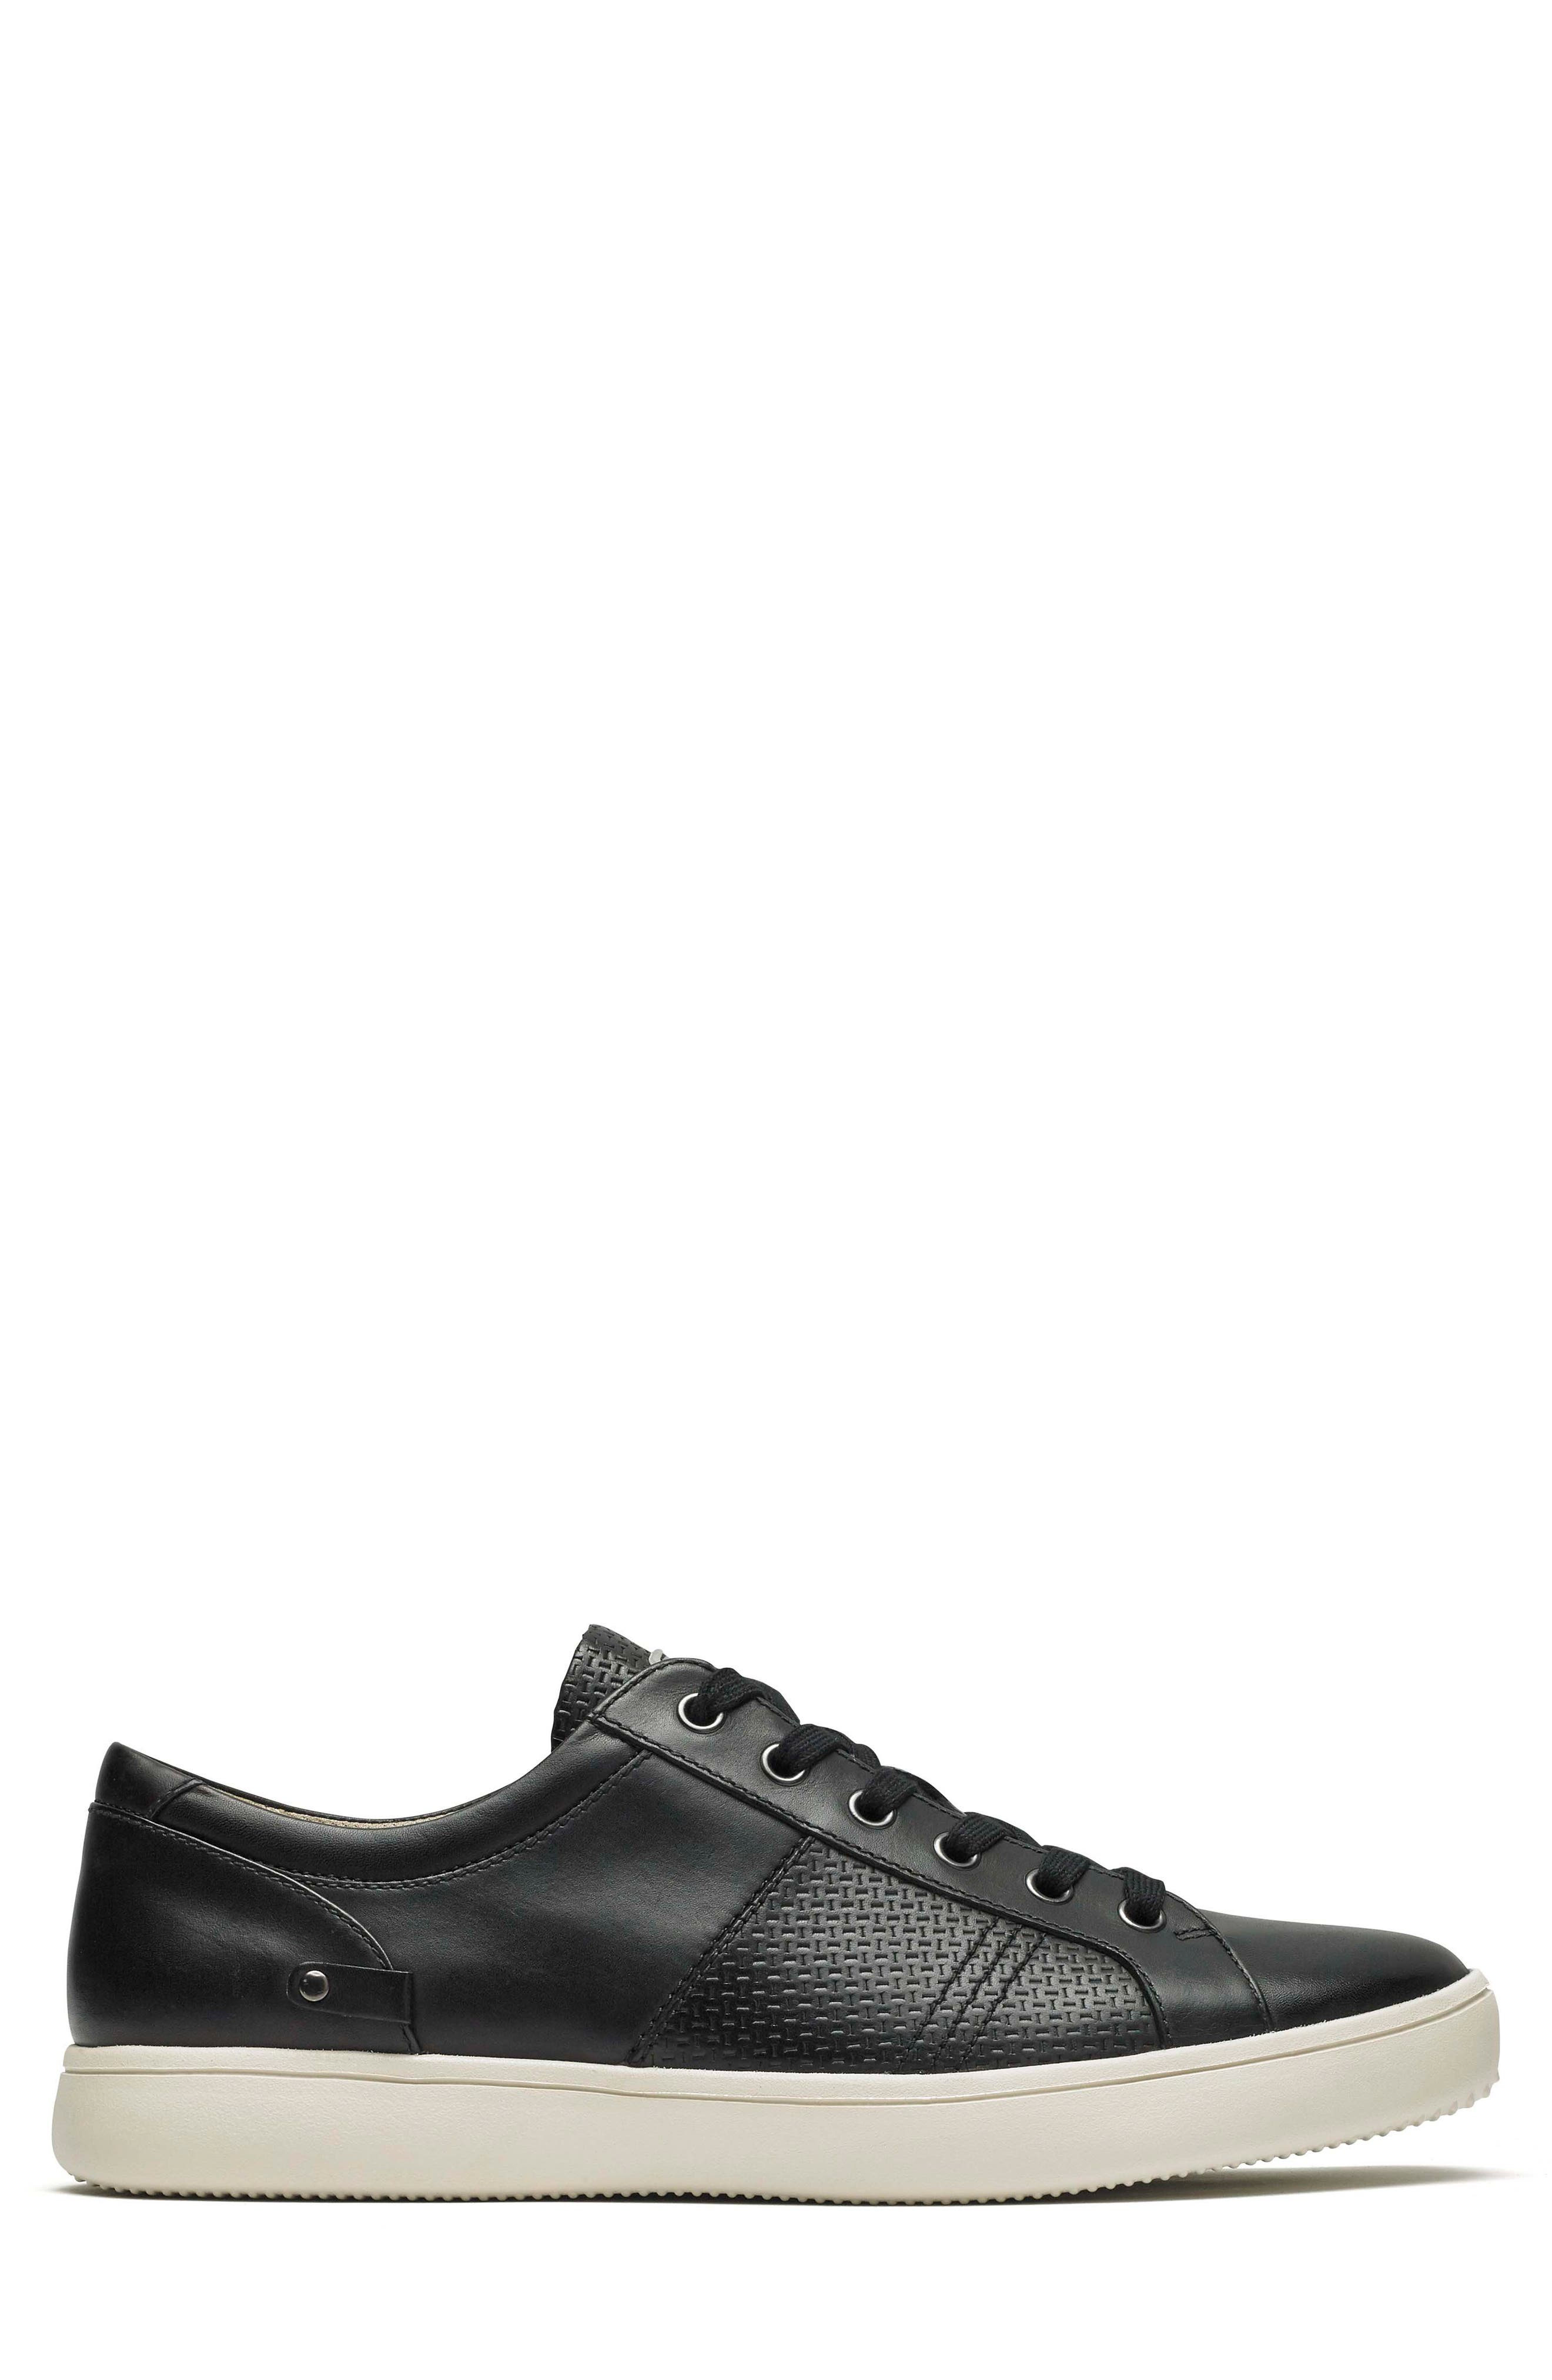 City Lites Collection Lace-Up Sneaker,                             Alternate thumbnail 3, color,                             001